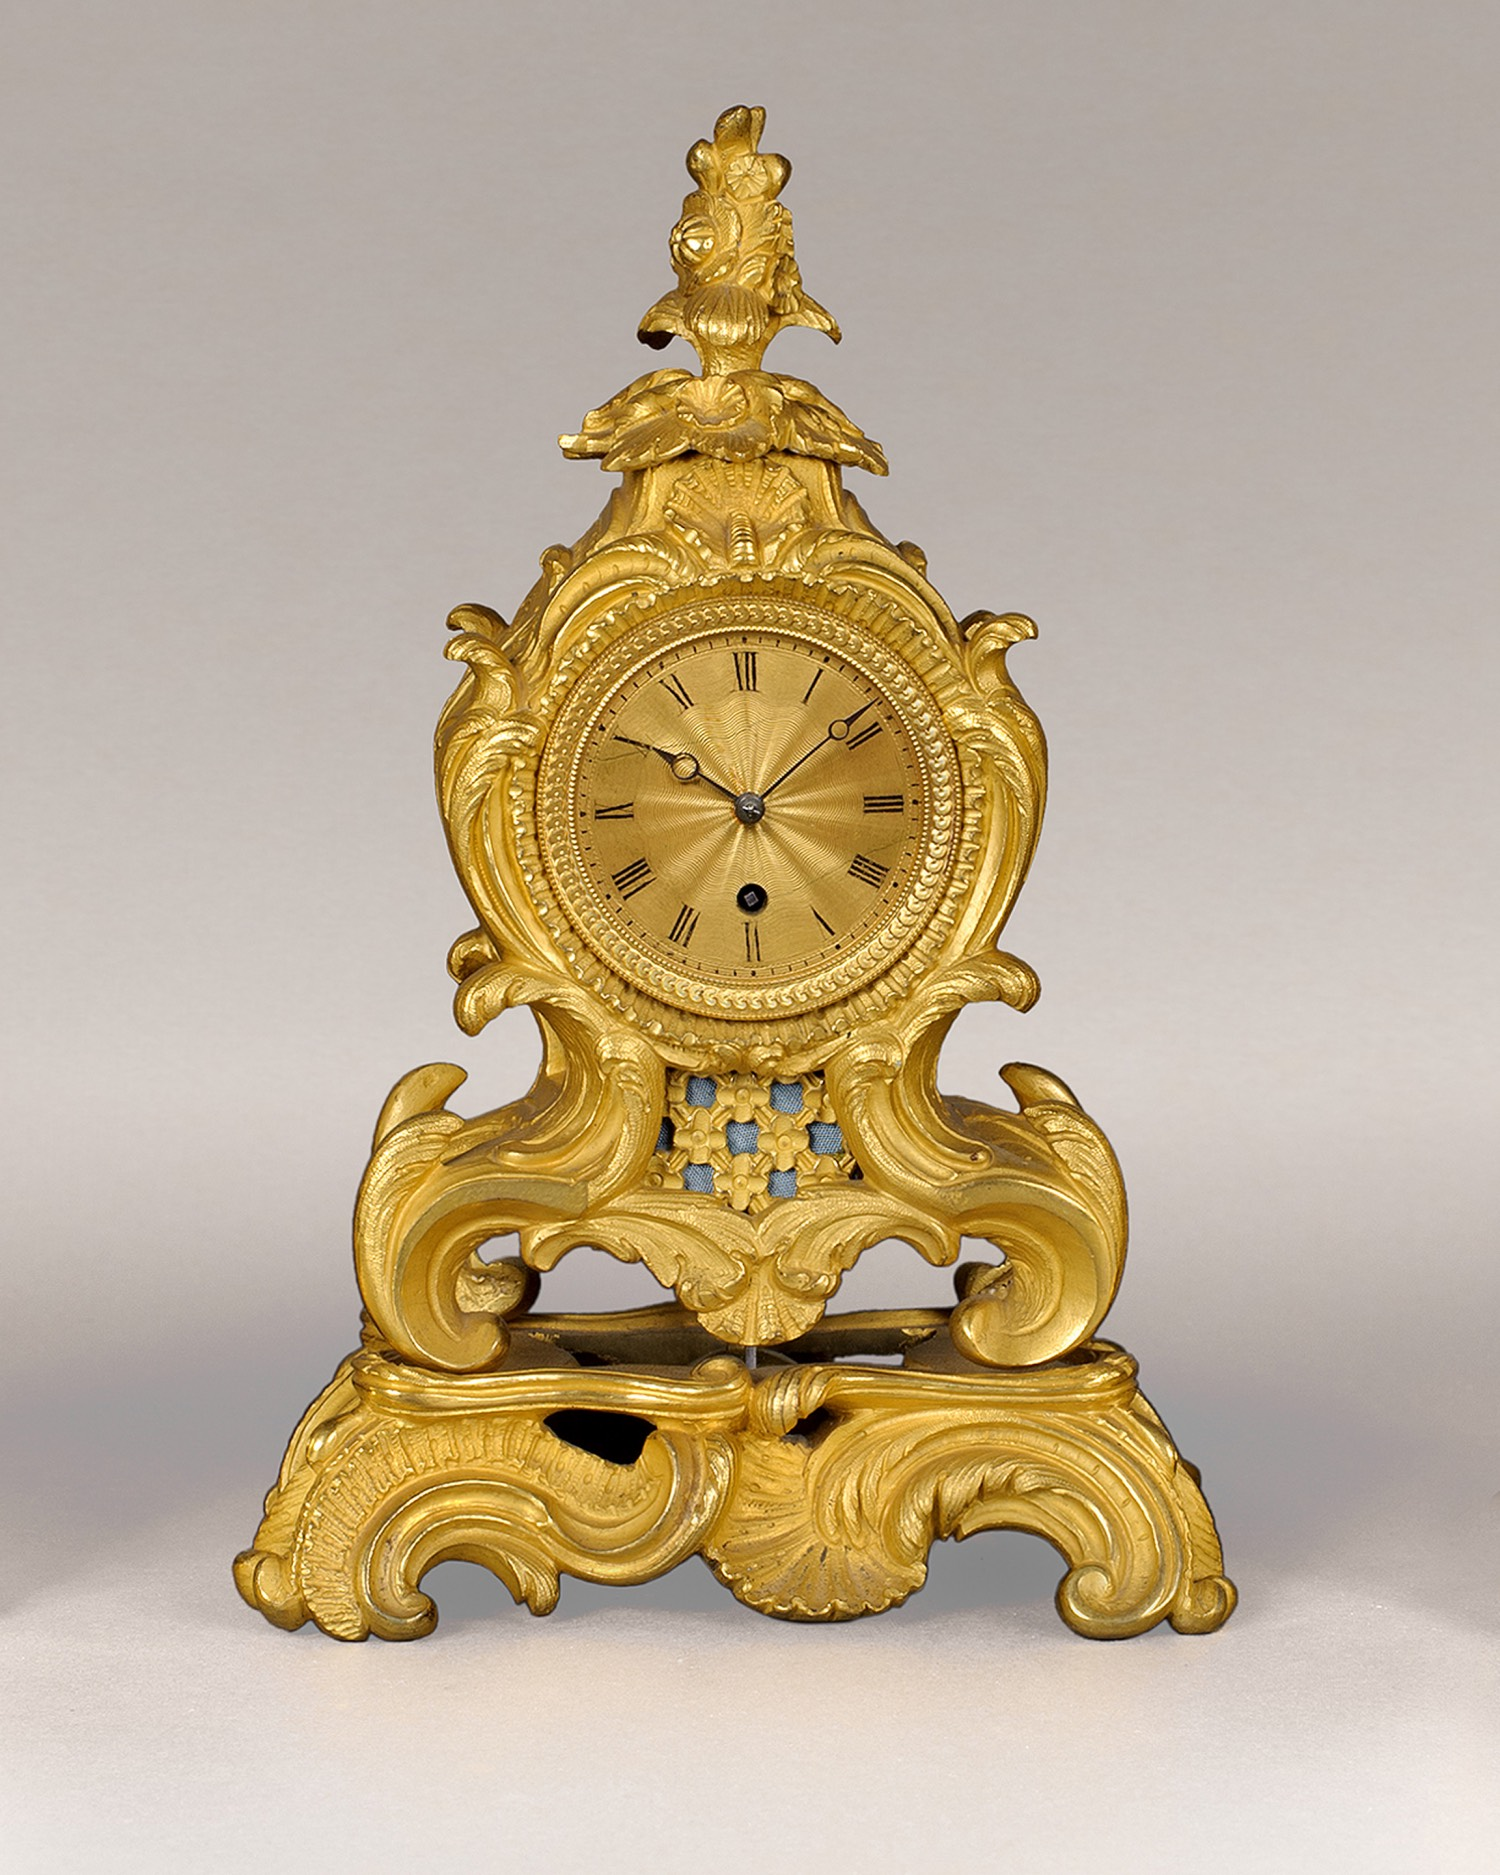 VINER AND CO EARLY 19TH CENTURY TIMEPIECE